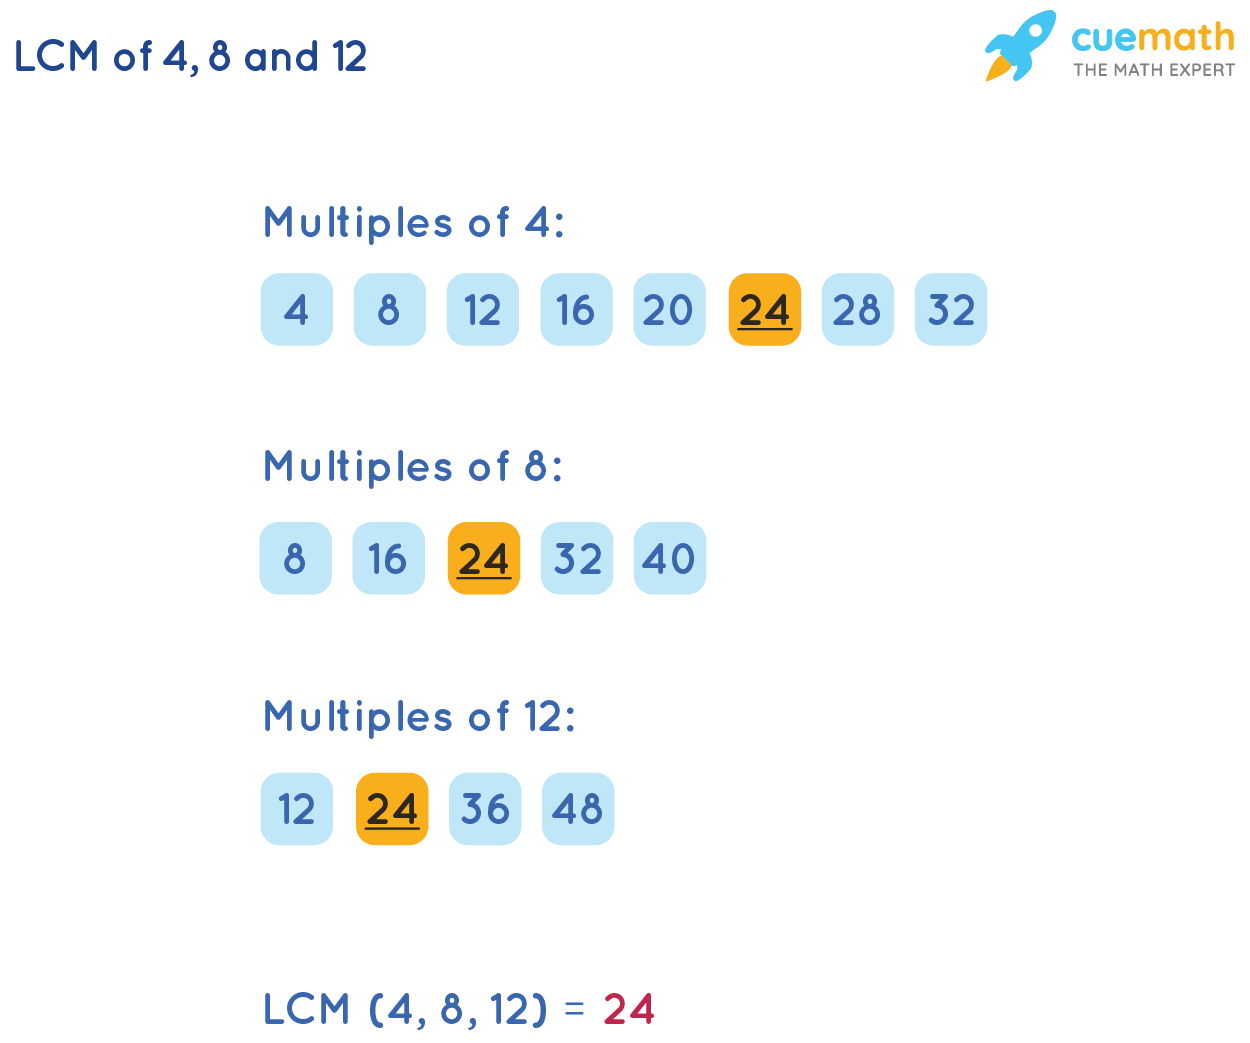 LCM of 4, 8, and 12by Listing Method